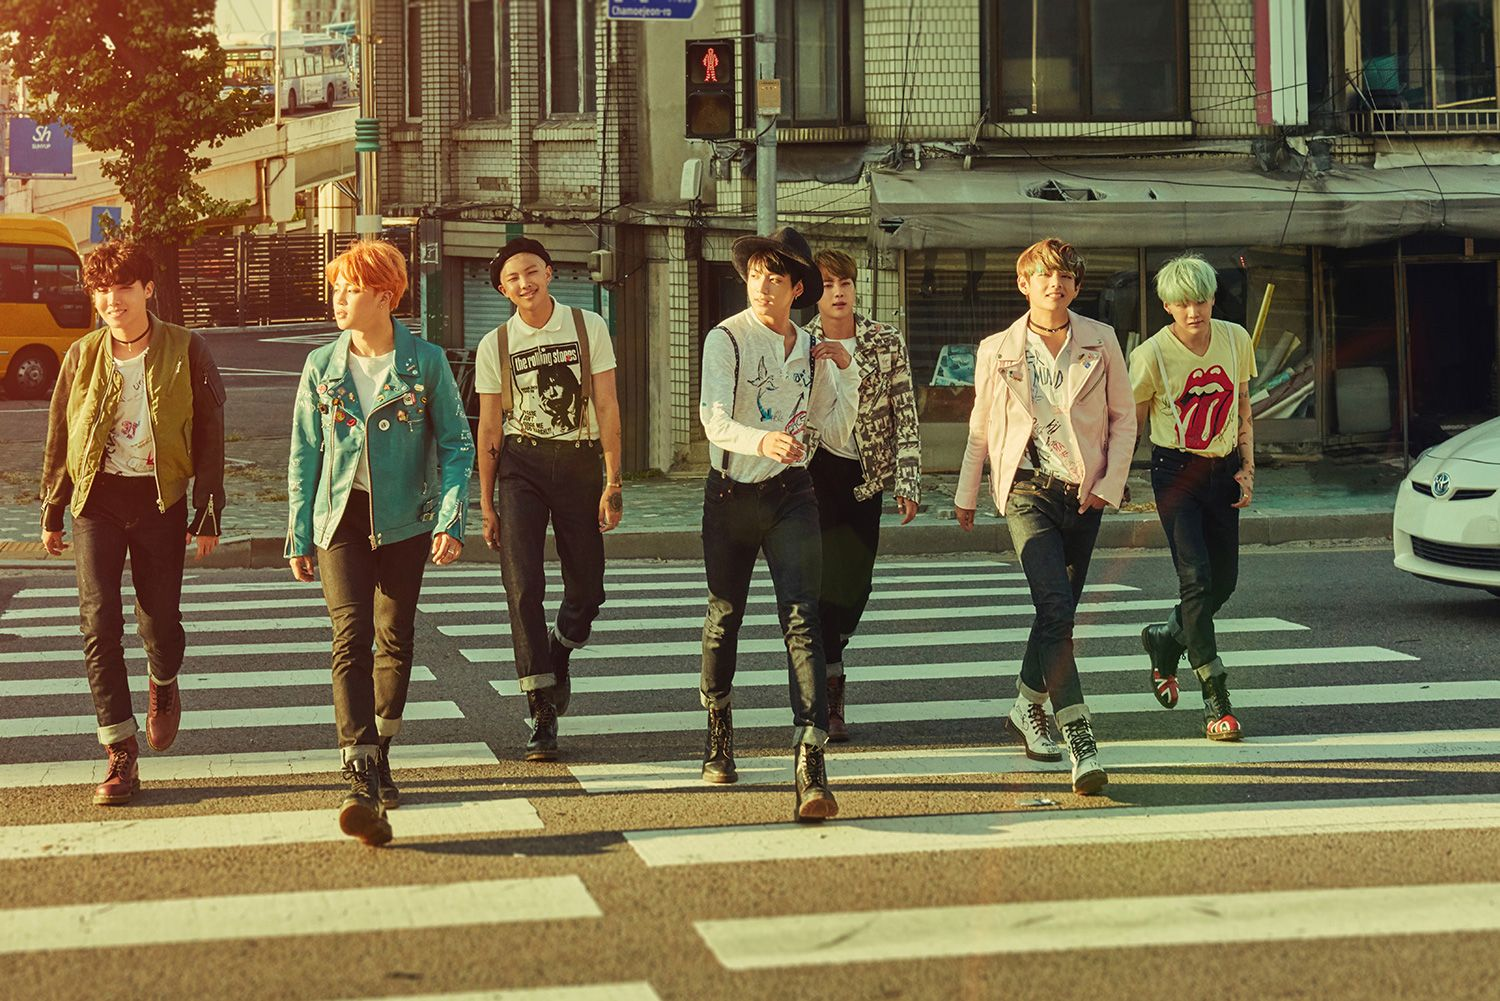 [Picture] BTS 화양연화 pt.2 Concept Photo – [Je Ne Regrette Rien] [151123] | btsdiary